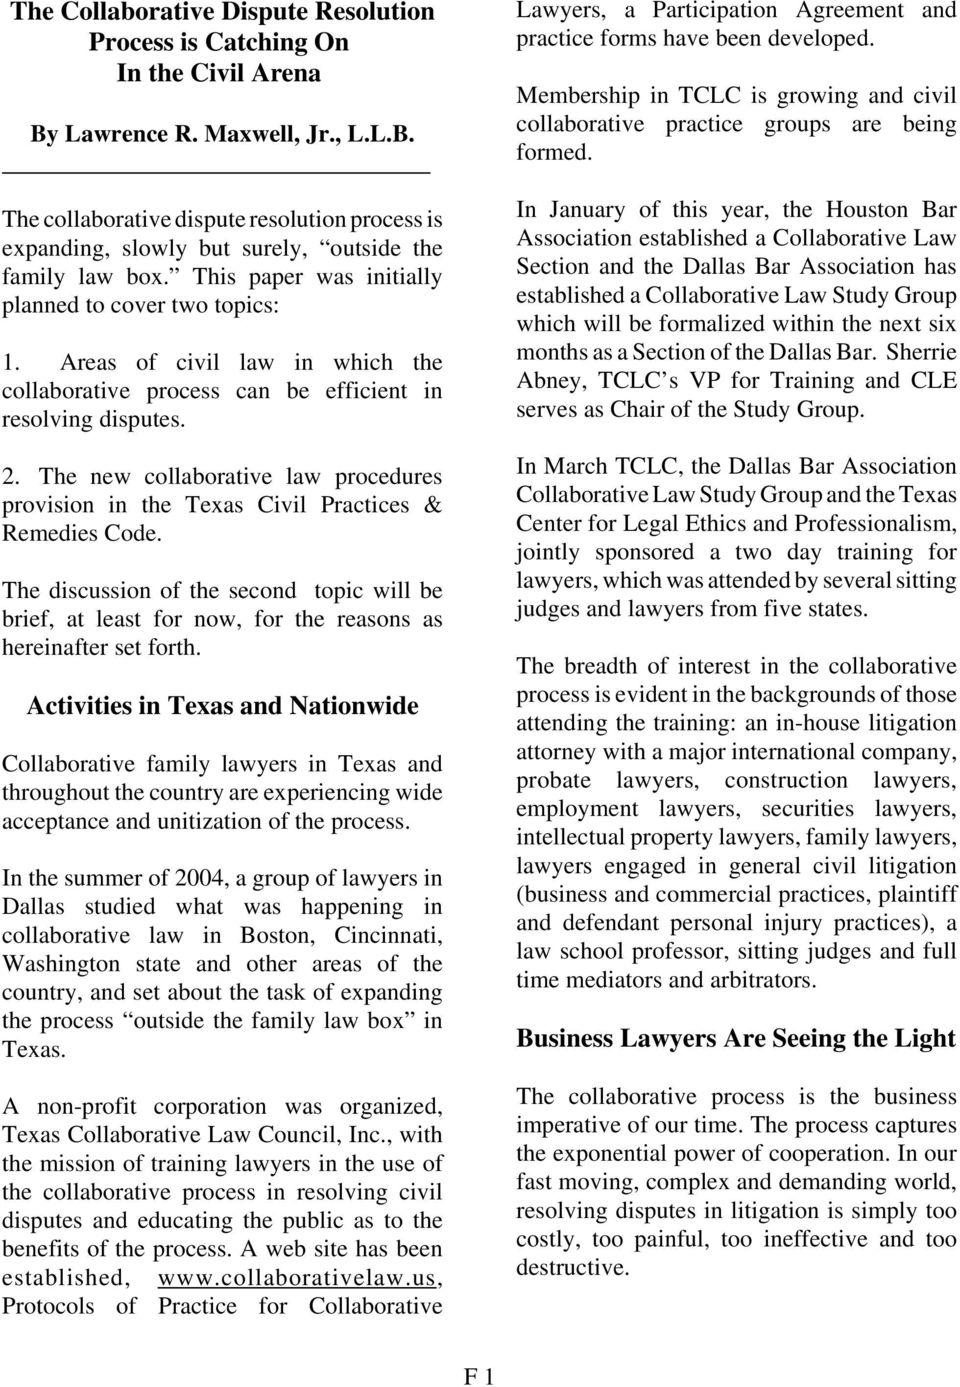 The new collaborative law procedures provision in the Texas Civil Practices & Remedies Code.